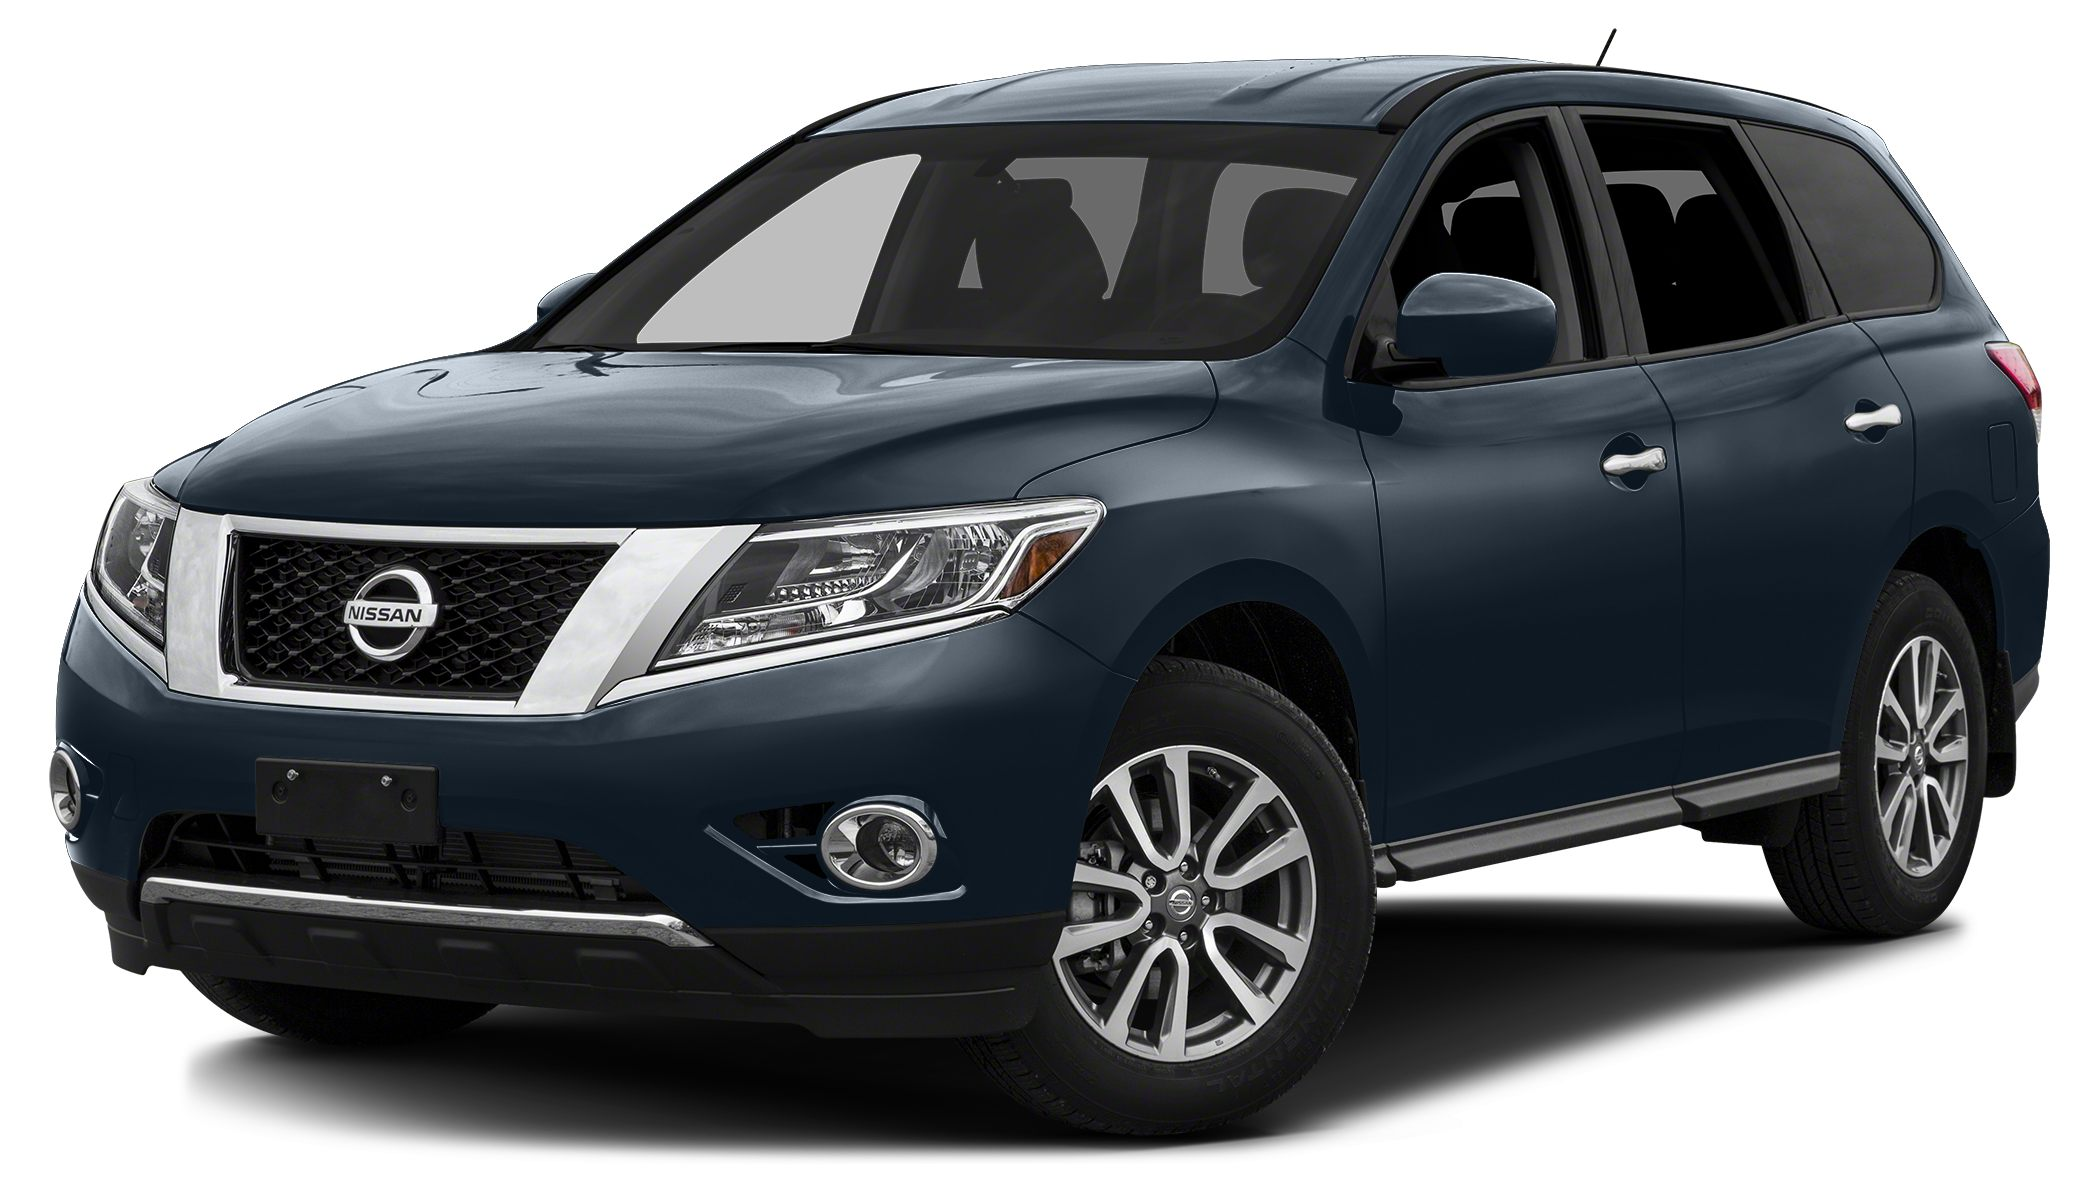 2013 Nissan Pathfinder SL Land a score on this 2013 Nissan Pathfinder SL while we have it Spaciou